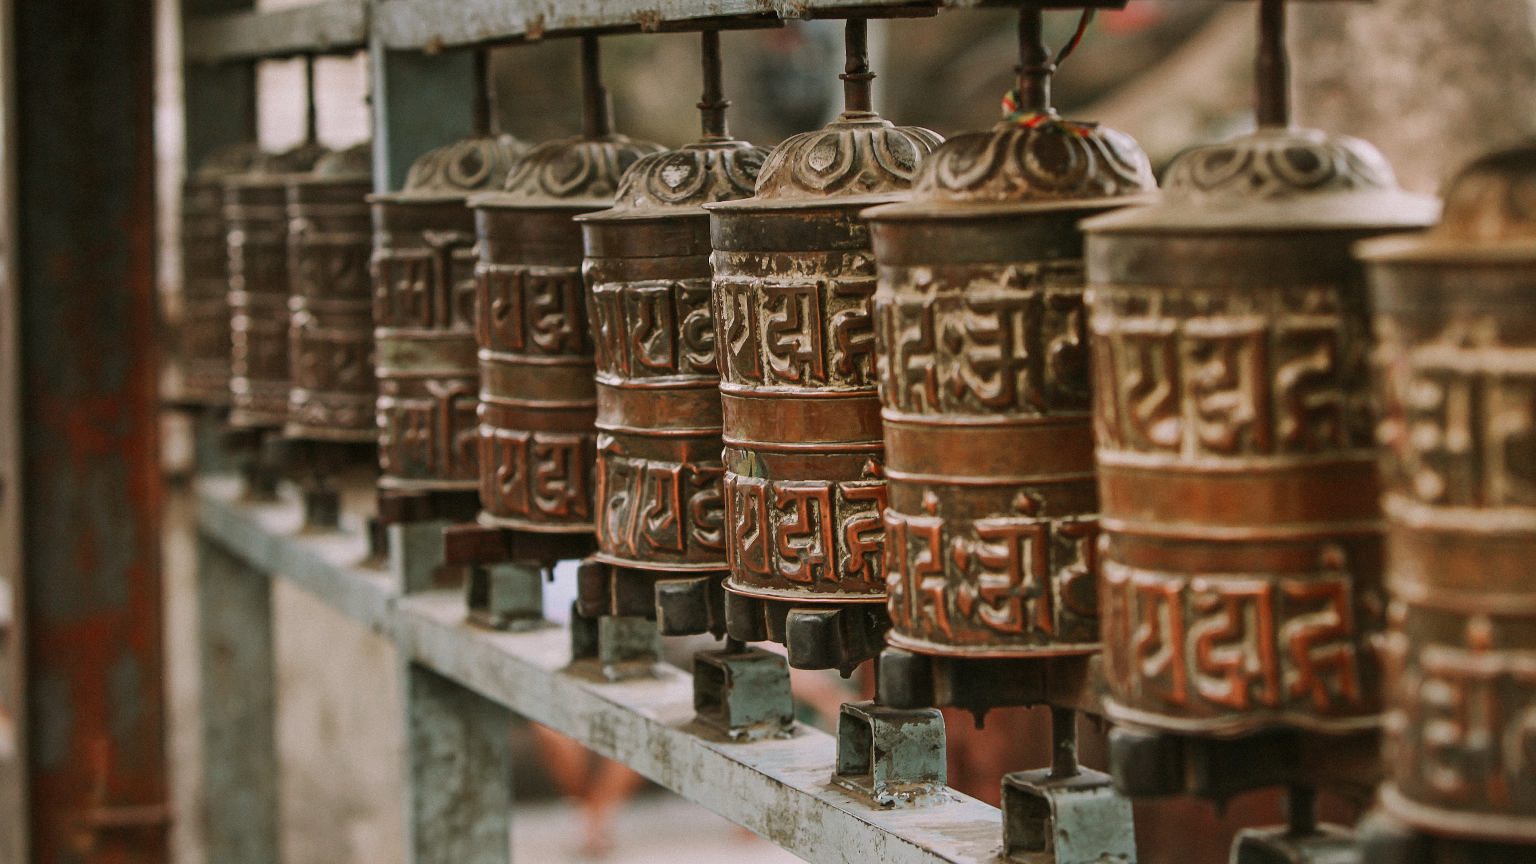 IndiaNepal-Josh-Beecher-Prayer-Wheels